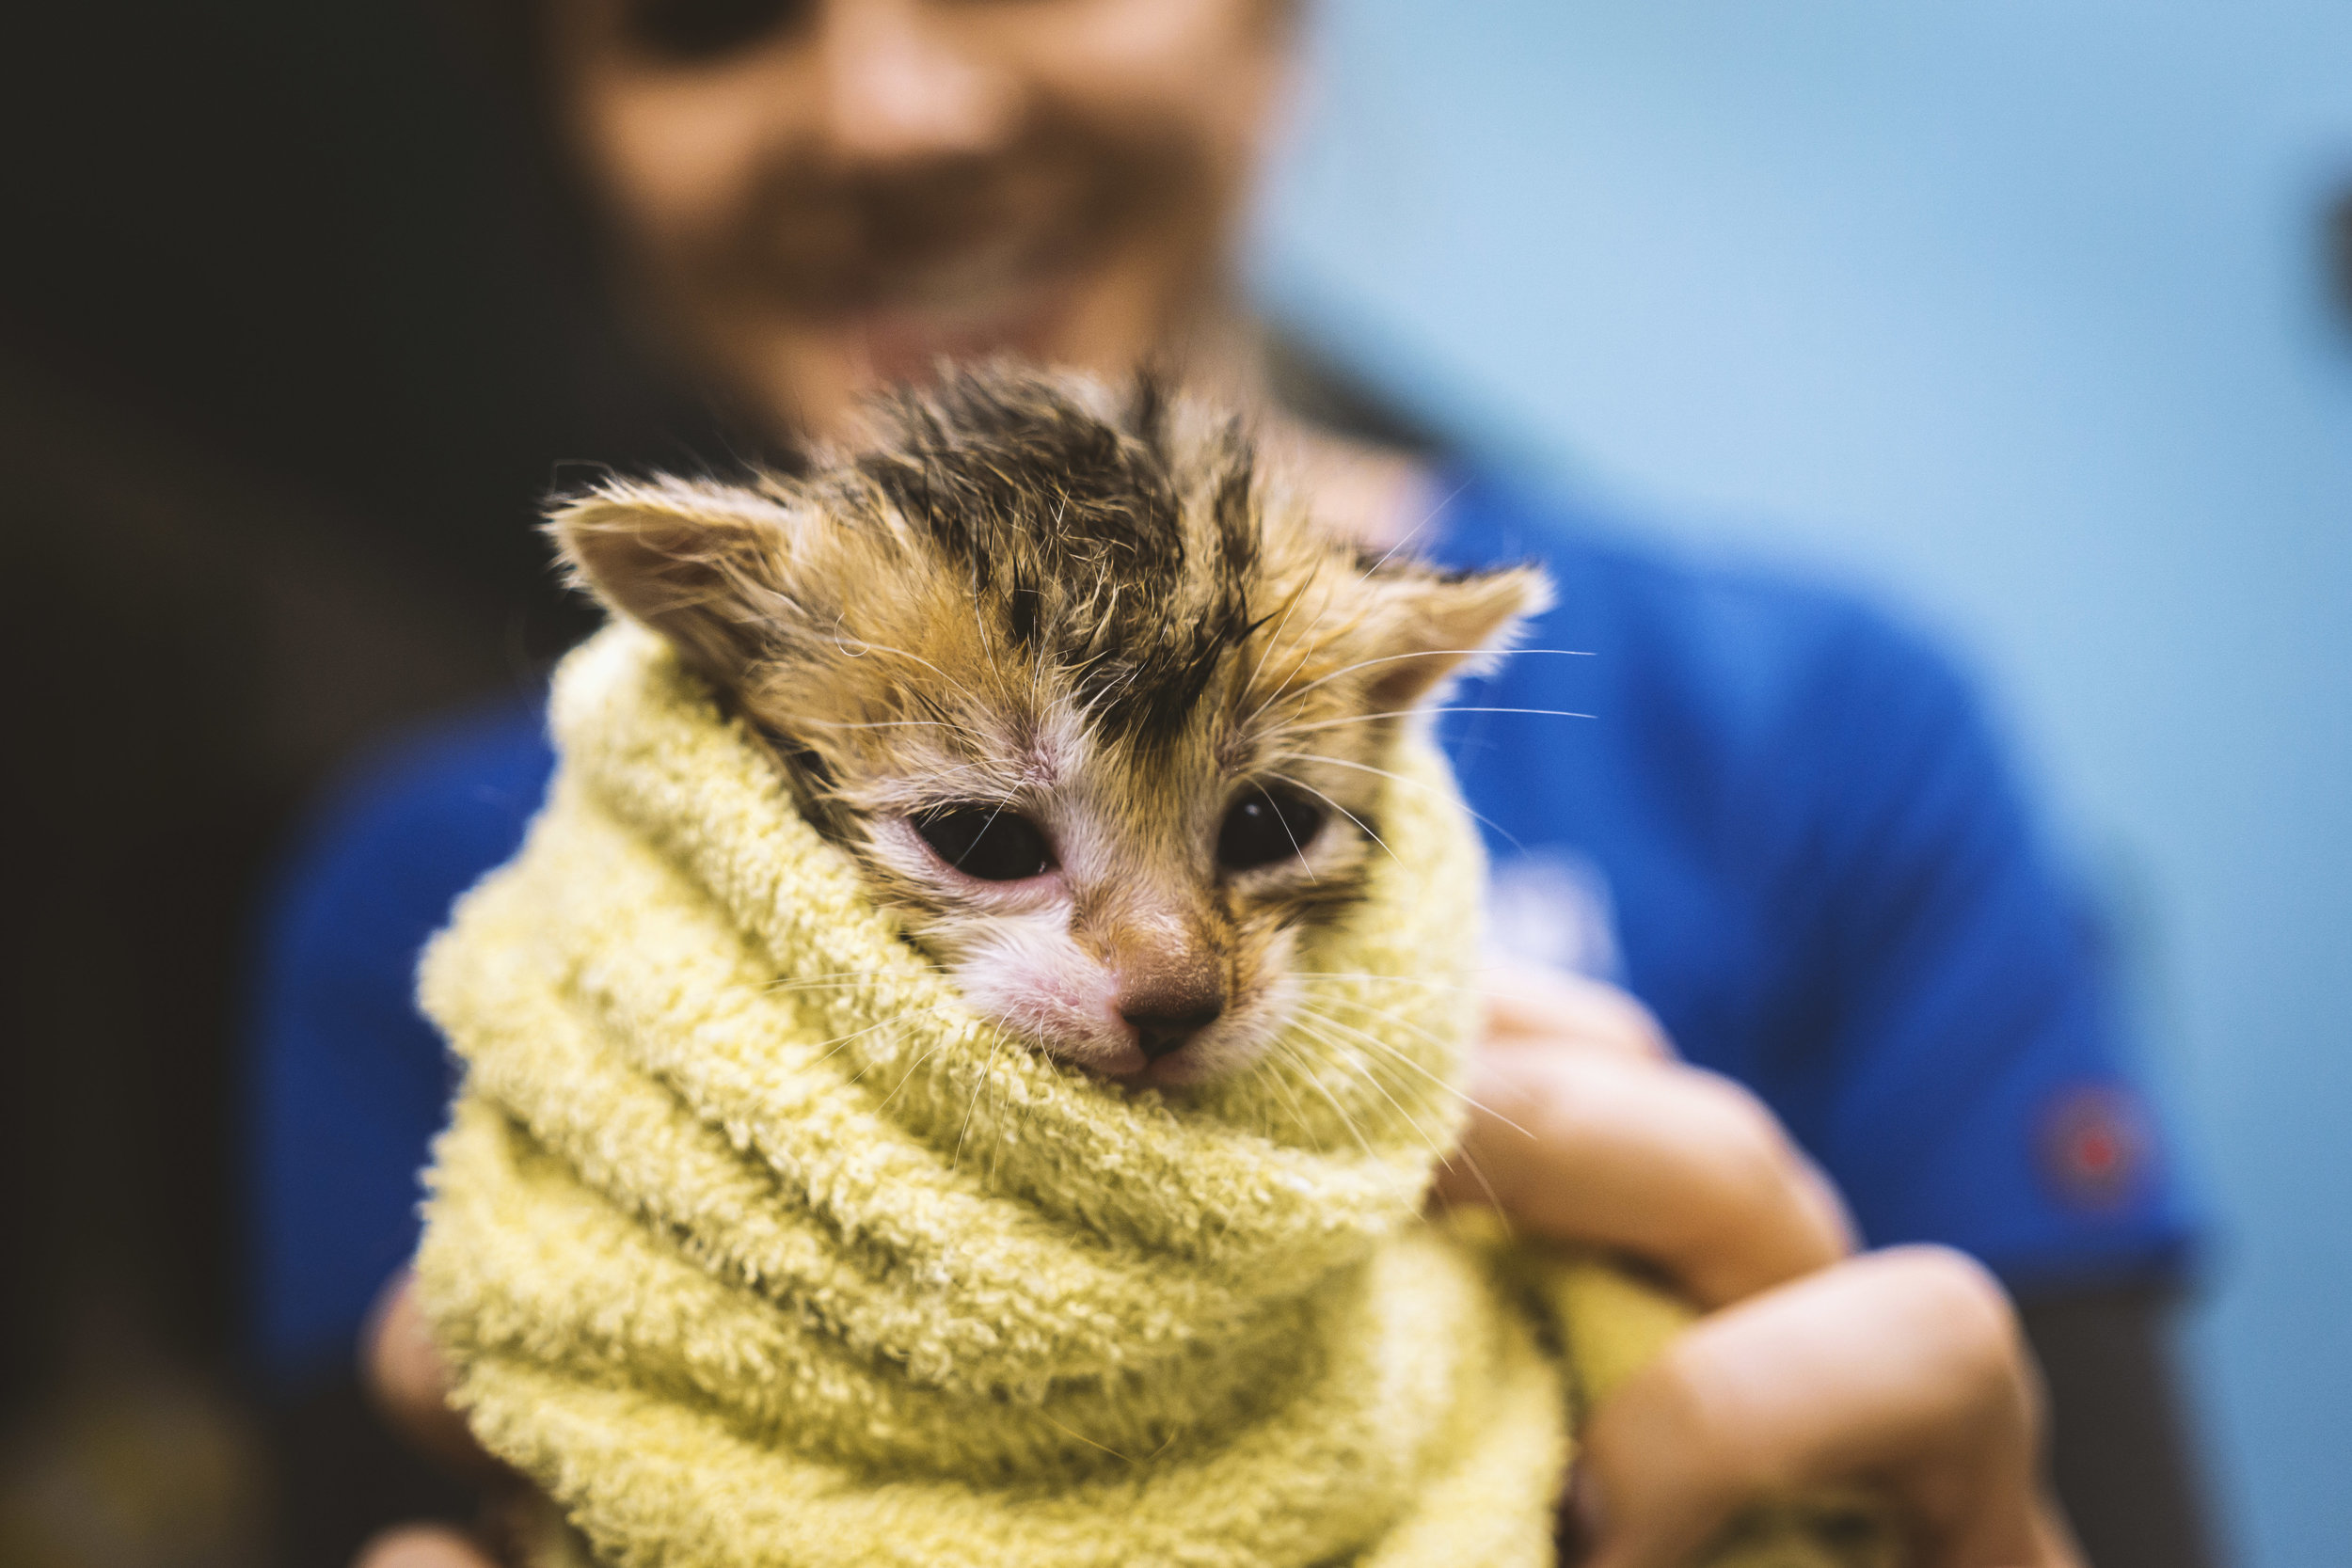 Kitten_towel_1.jpg